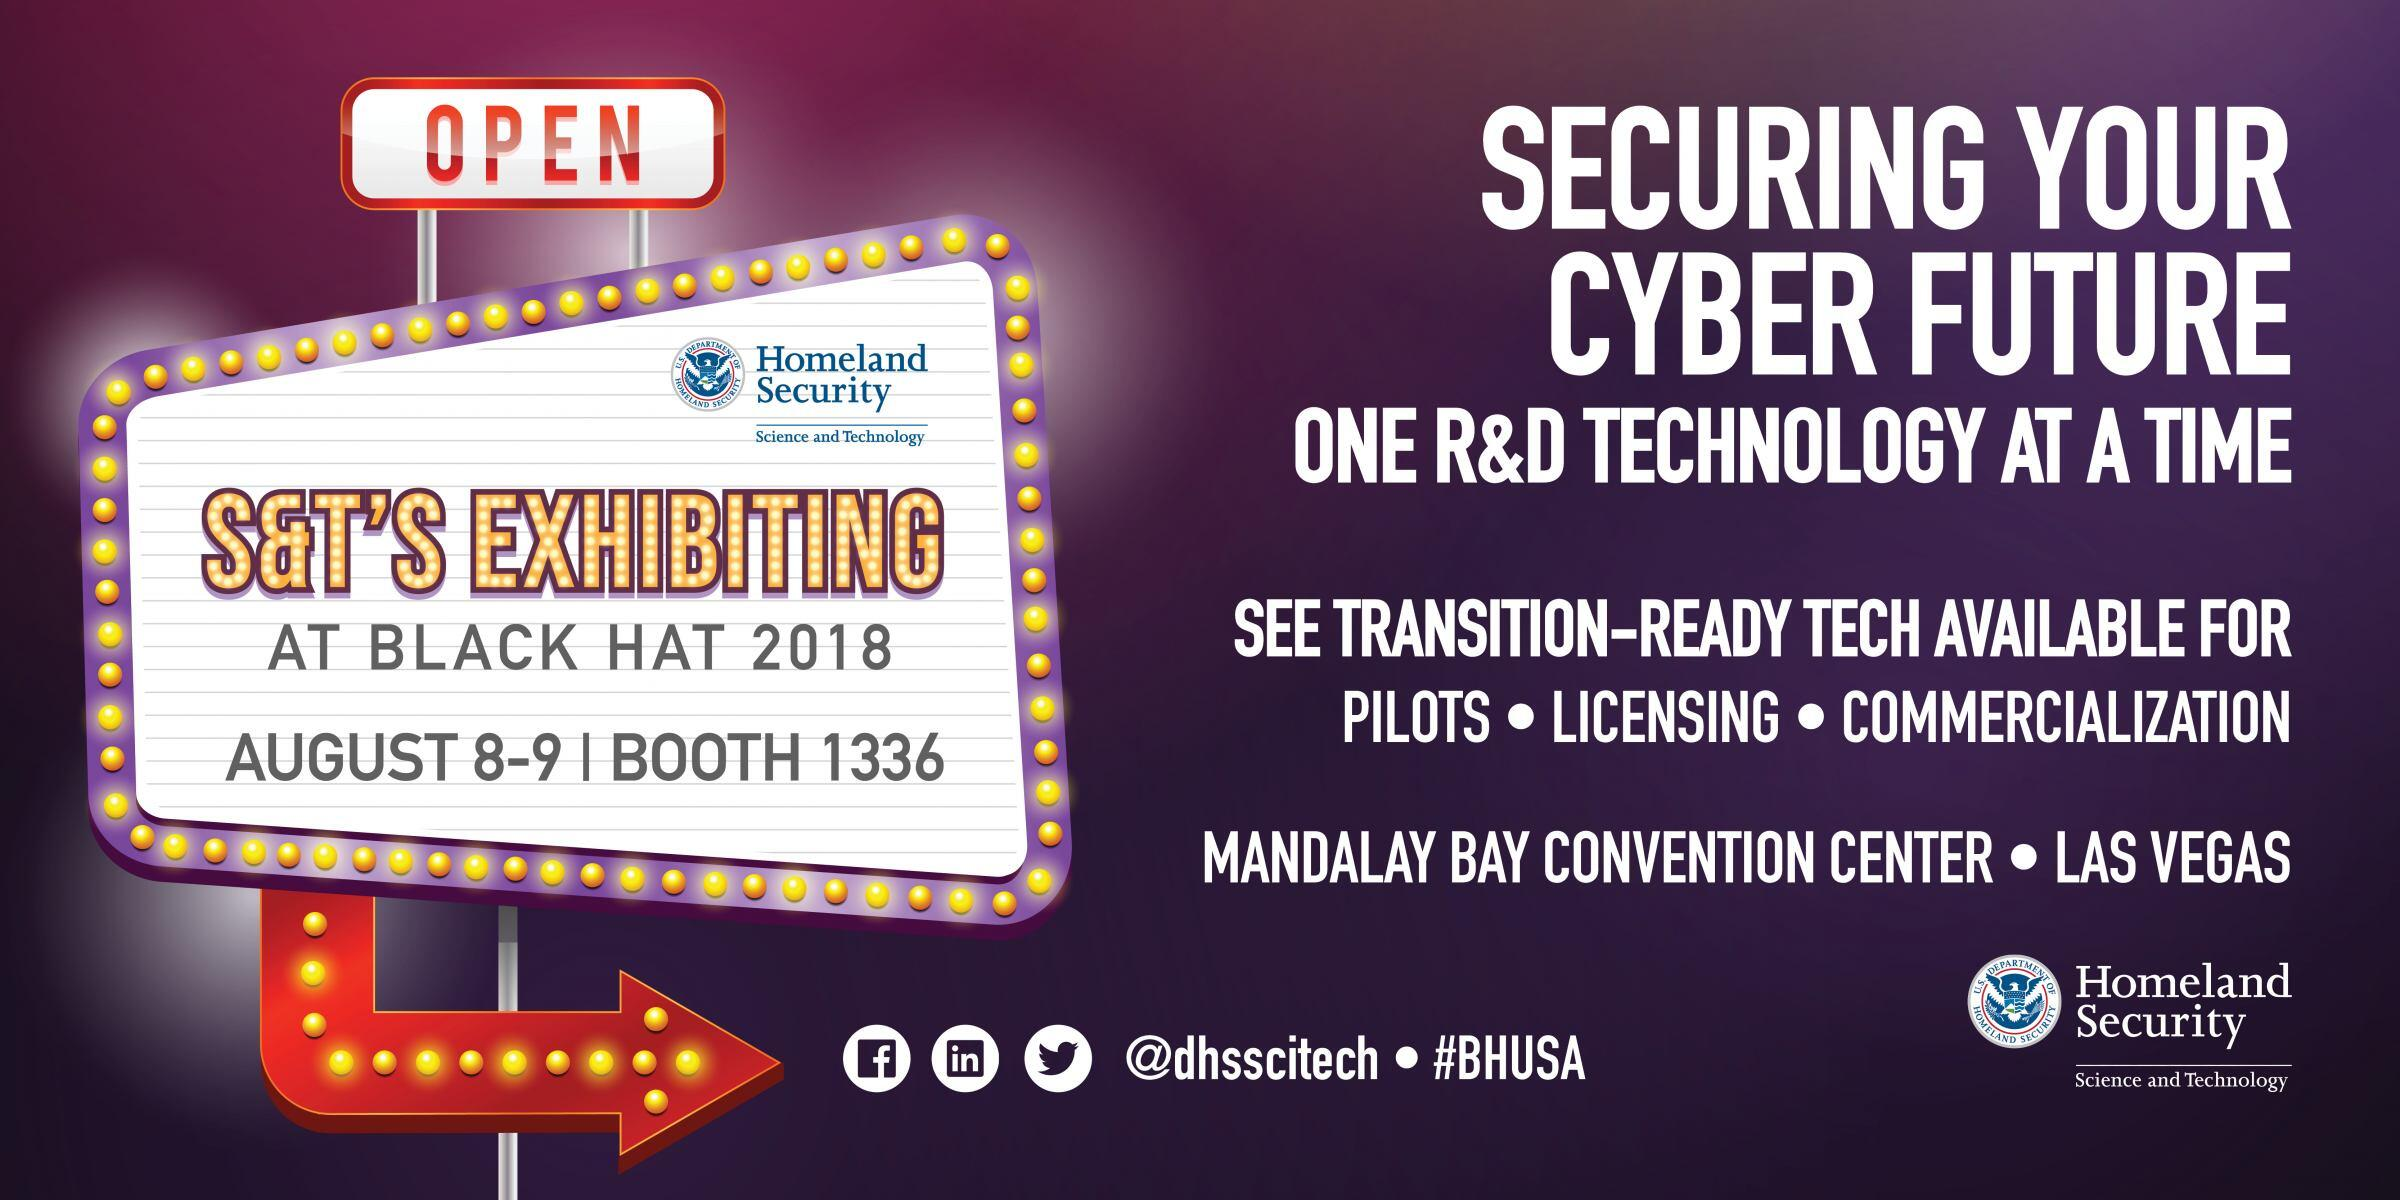 S&T's Exhibitng at Black Hat 2018, August 8-9 in Booth 1336. Securing your cyber future, one R&D technology at a time. See transition-ready tech available for pilots, licensing and commercialization. Mandalay Bay Convention Center, Las Vegas. DHS S&T Logo.